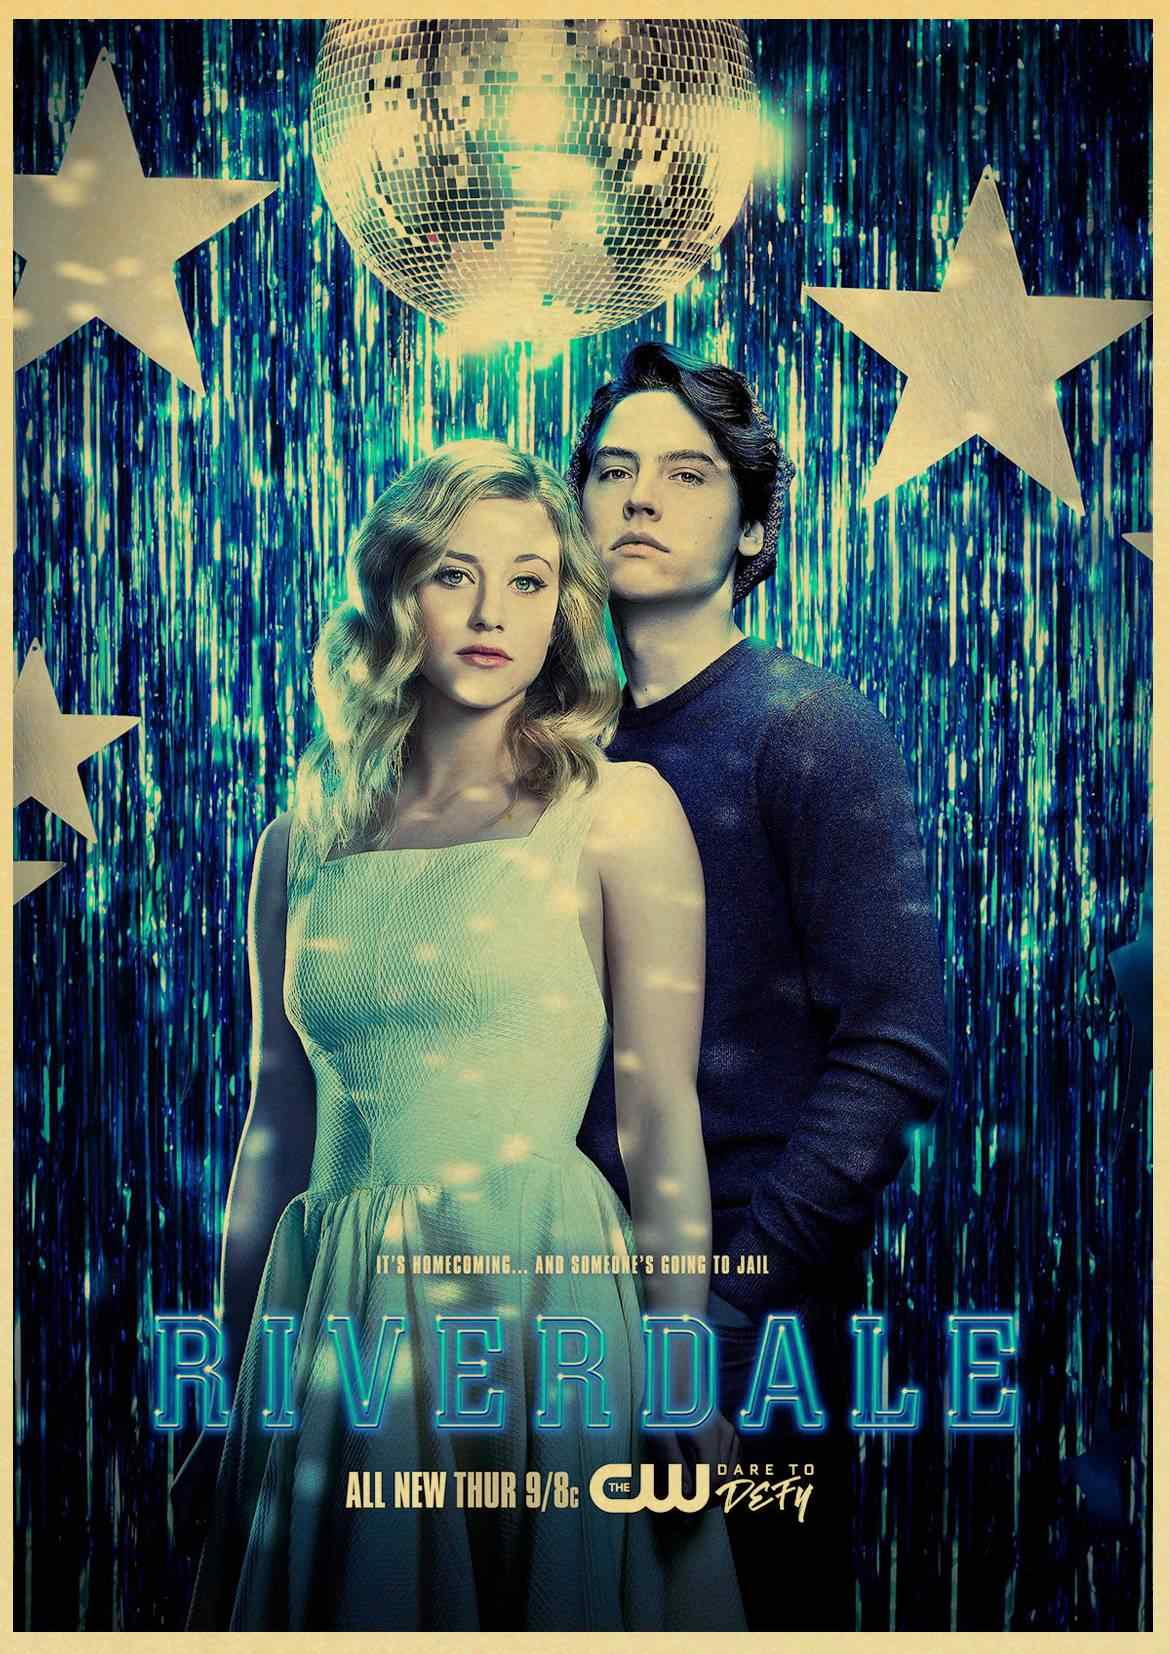 cool hot tv play riverdale  Poster Good Quality Painting vintage Poster Kraft Paper For Home Bar Wall  Bar Kids Room